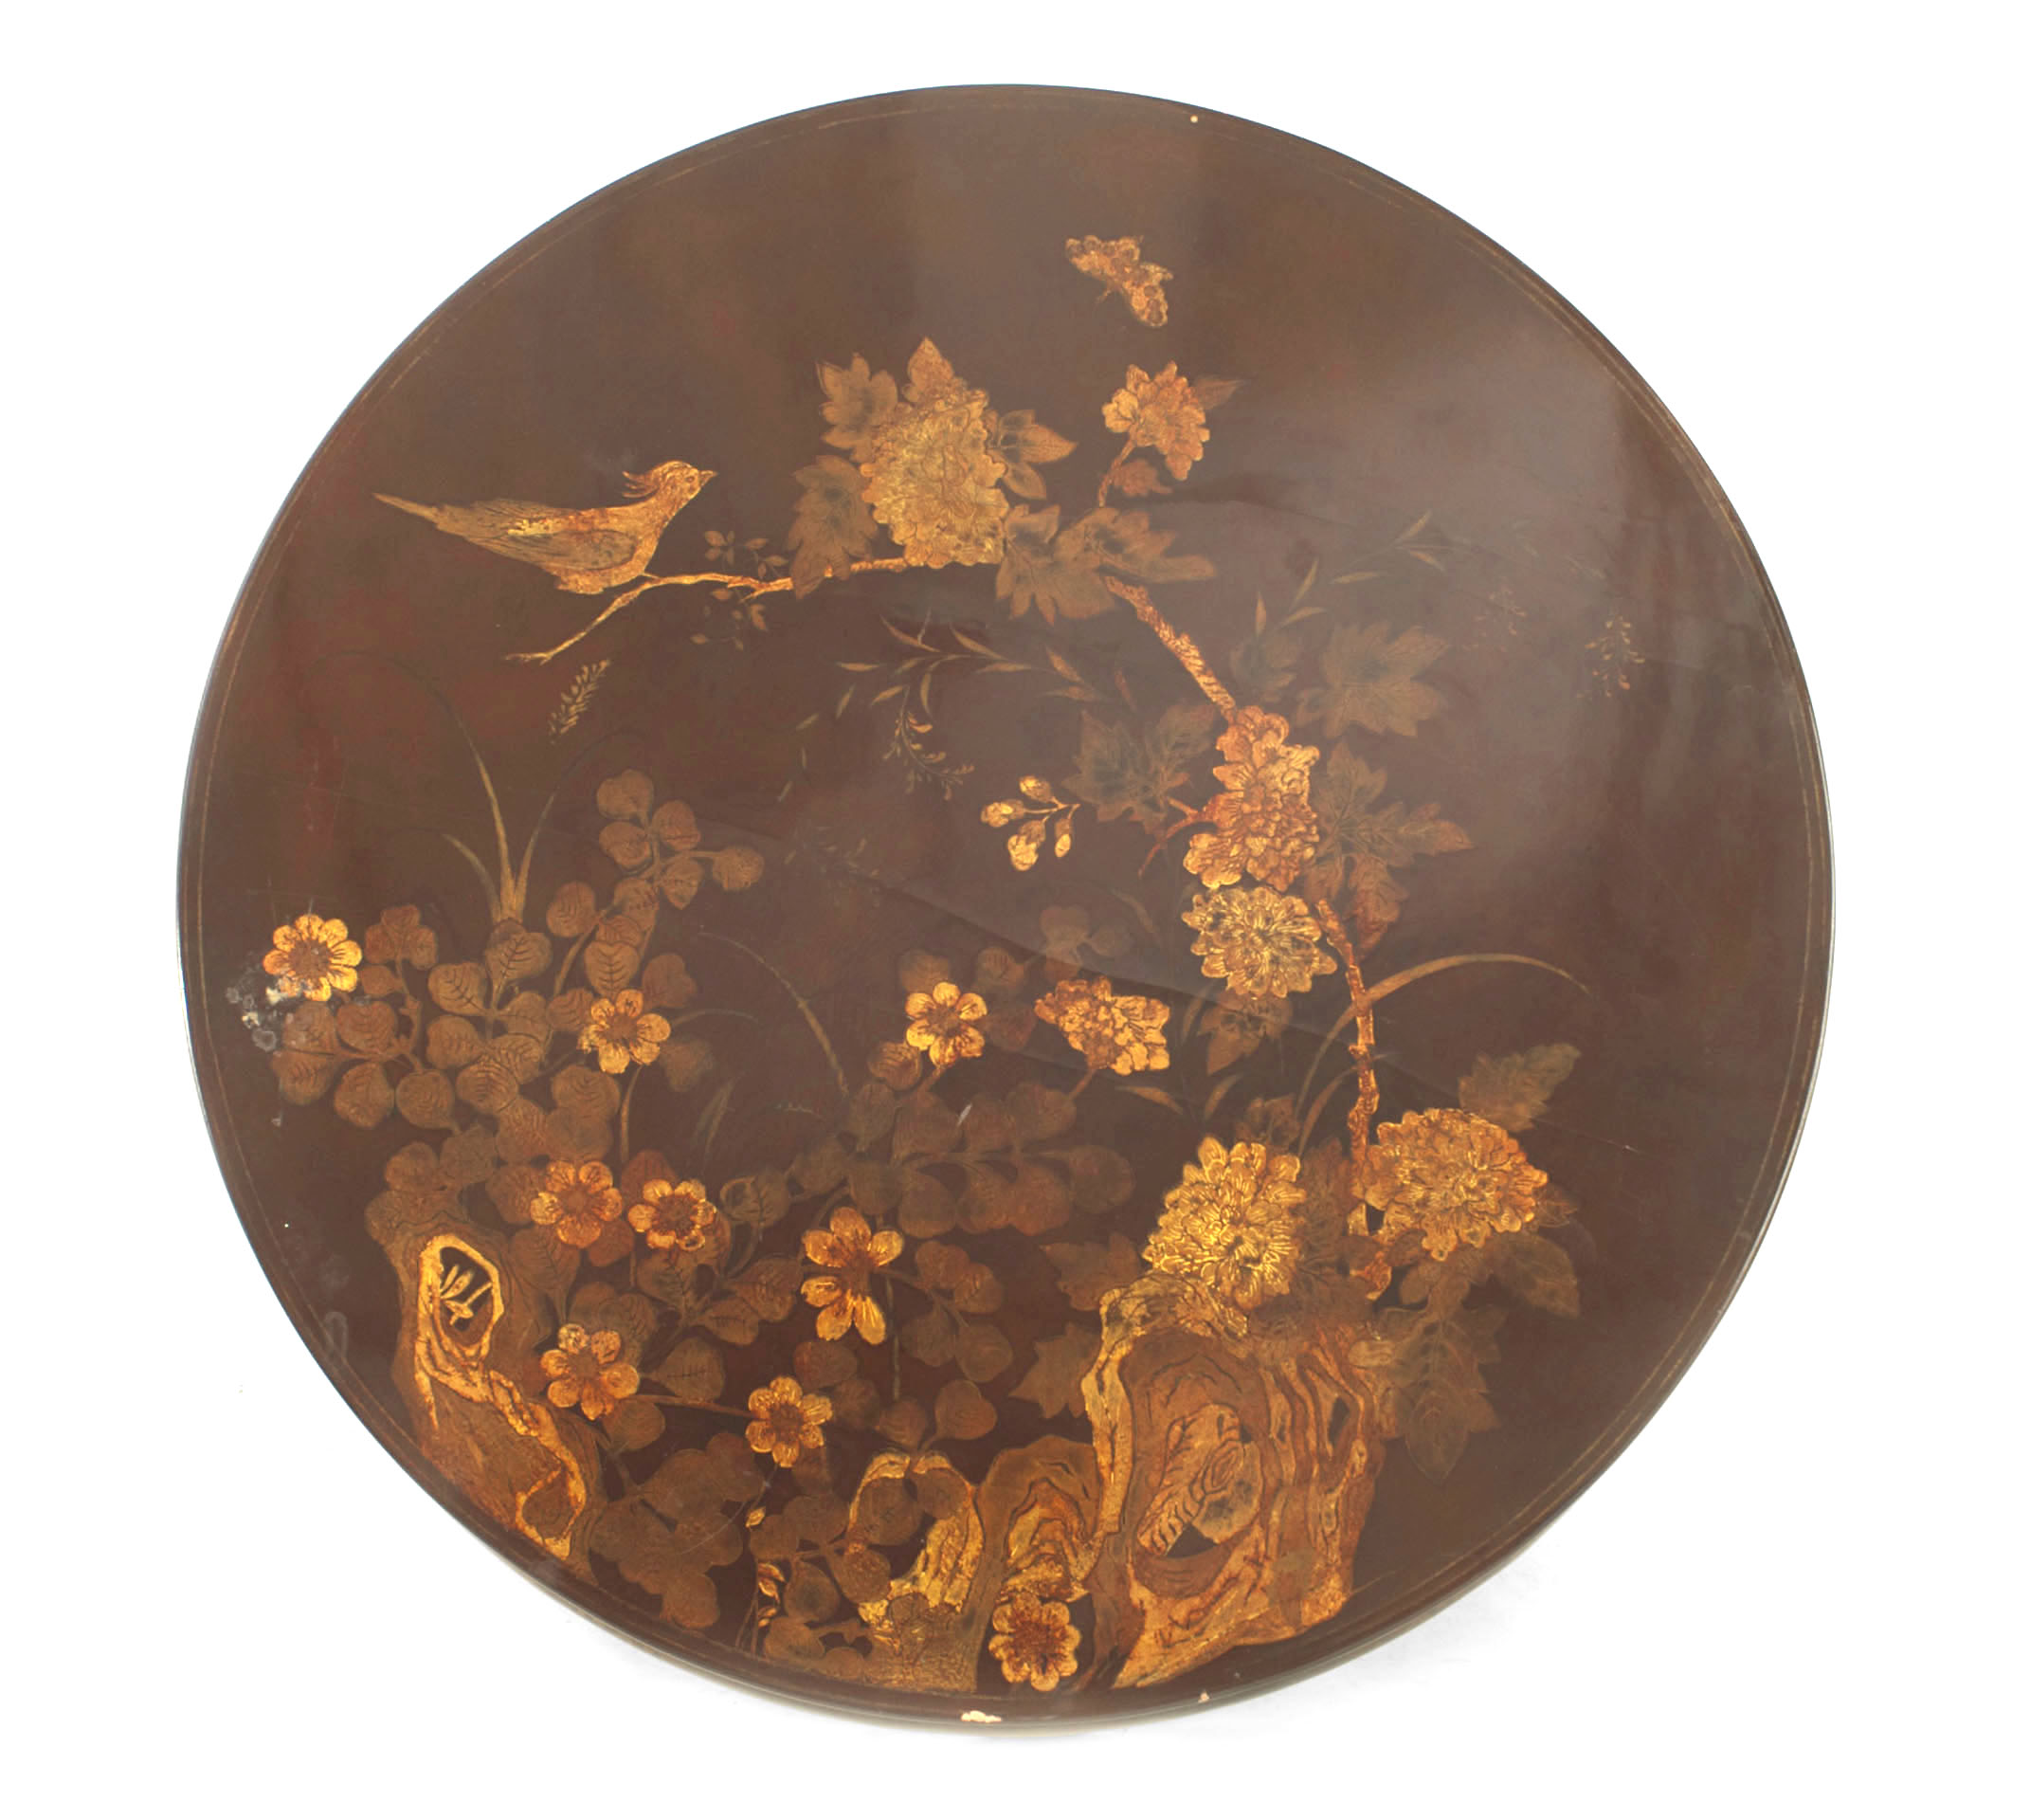 English Queen Anne Style Round Chinoiserie Rust Lacquer Floral Design  Coffee Table (20th Cent) English Queen Anne Style Round Chinoiserie Rust  Lacquer ...